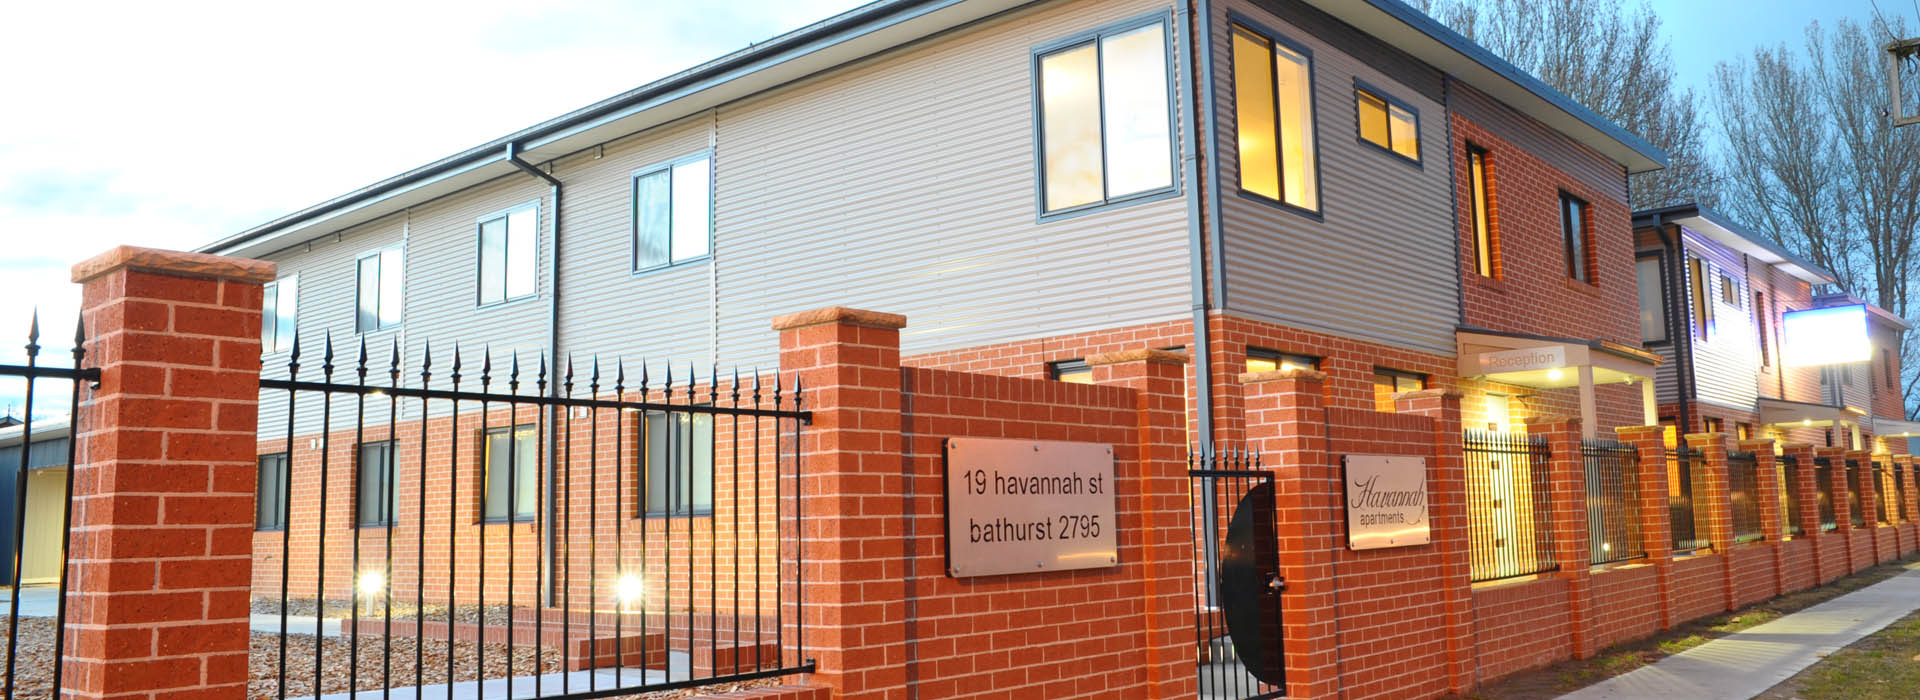 Havannah Accommodation is a modern, comfortable and spacious alternative accommodation option.